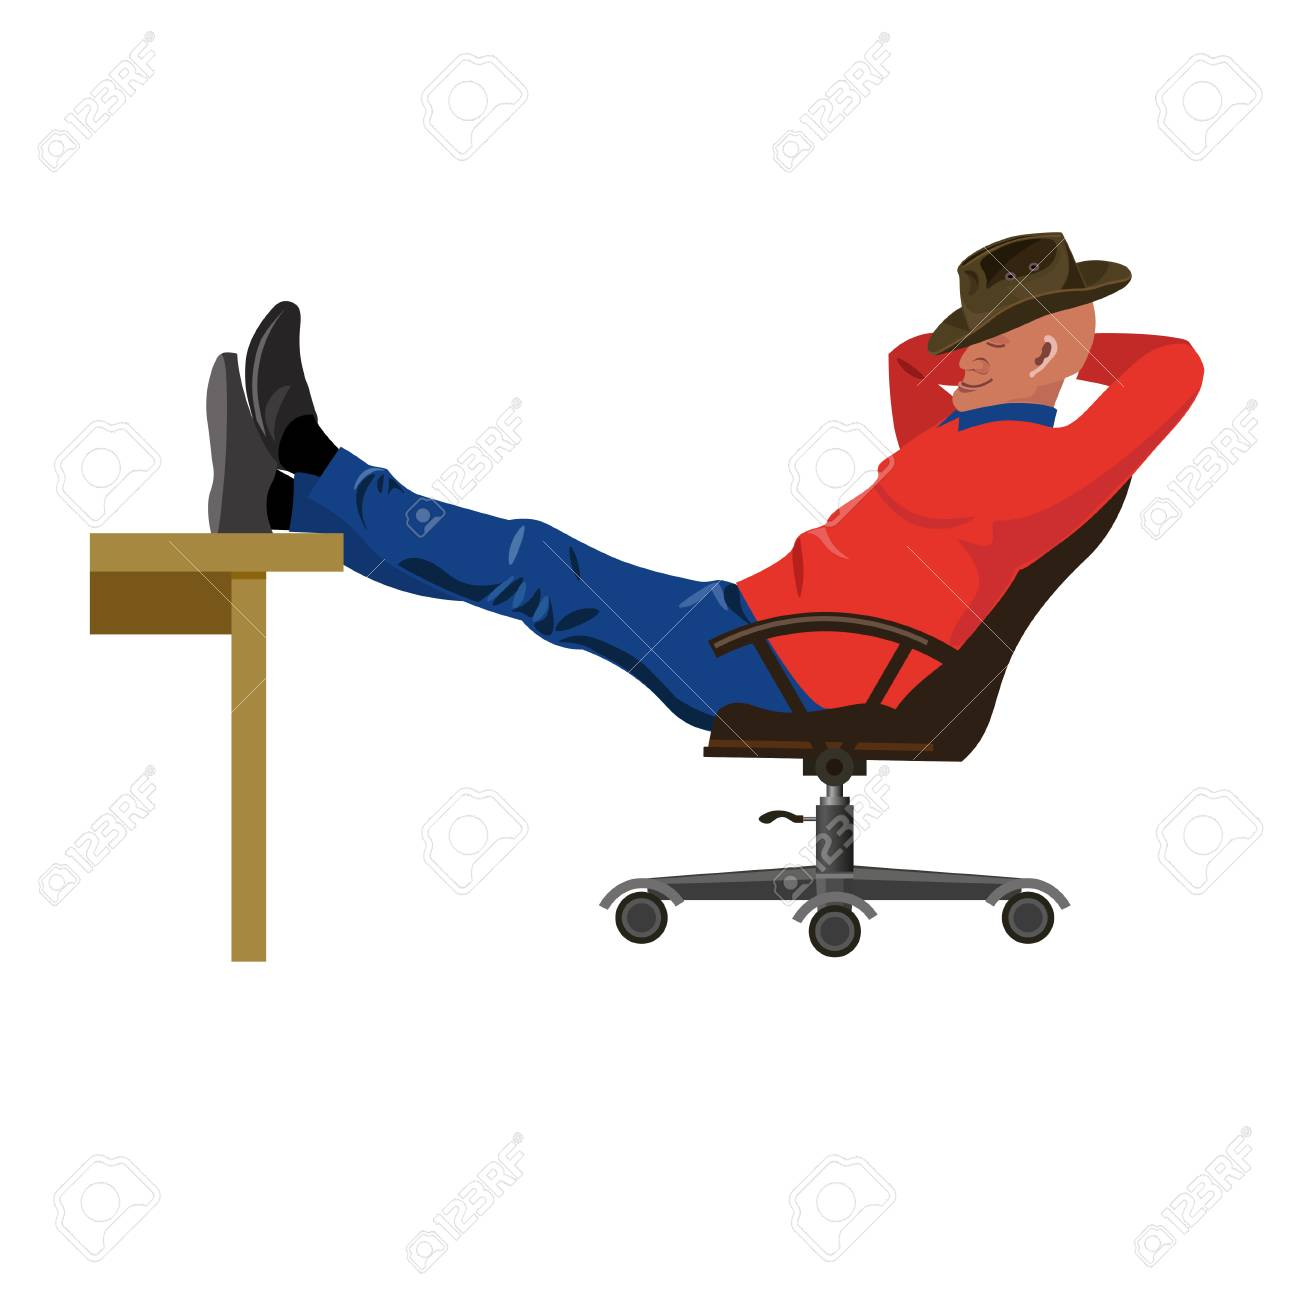 Man sitting in chair with legs on table. Vector illustration.